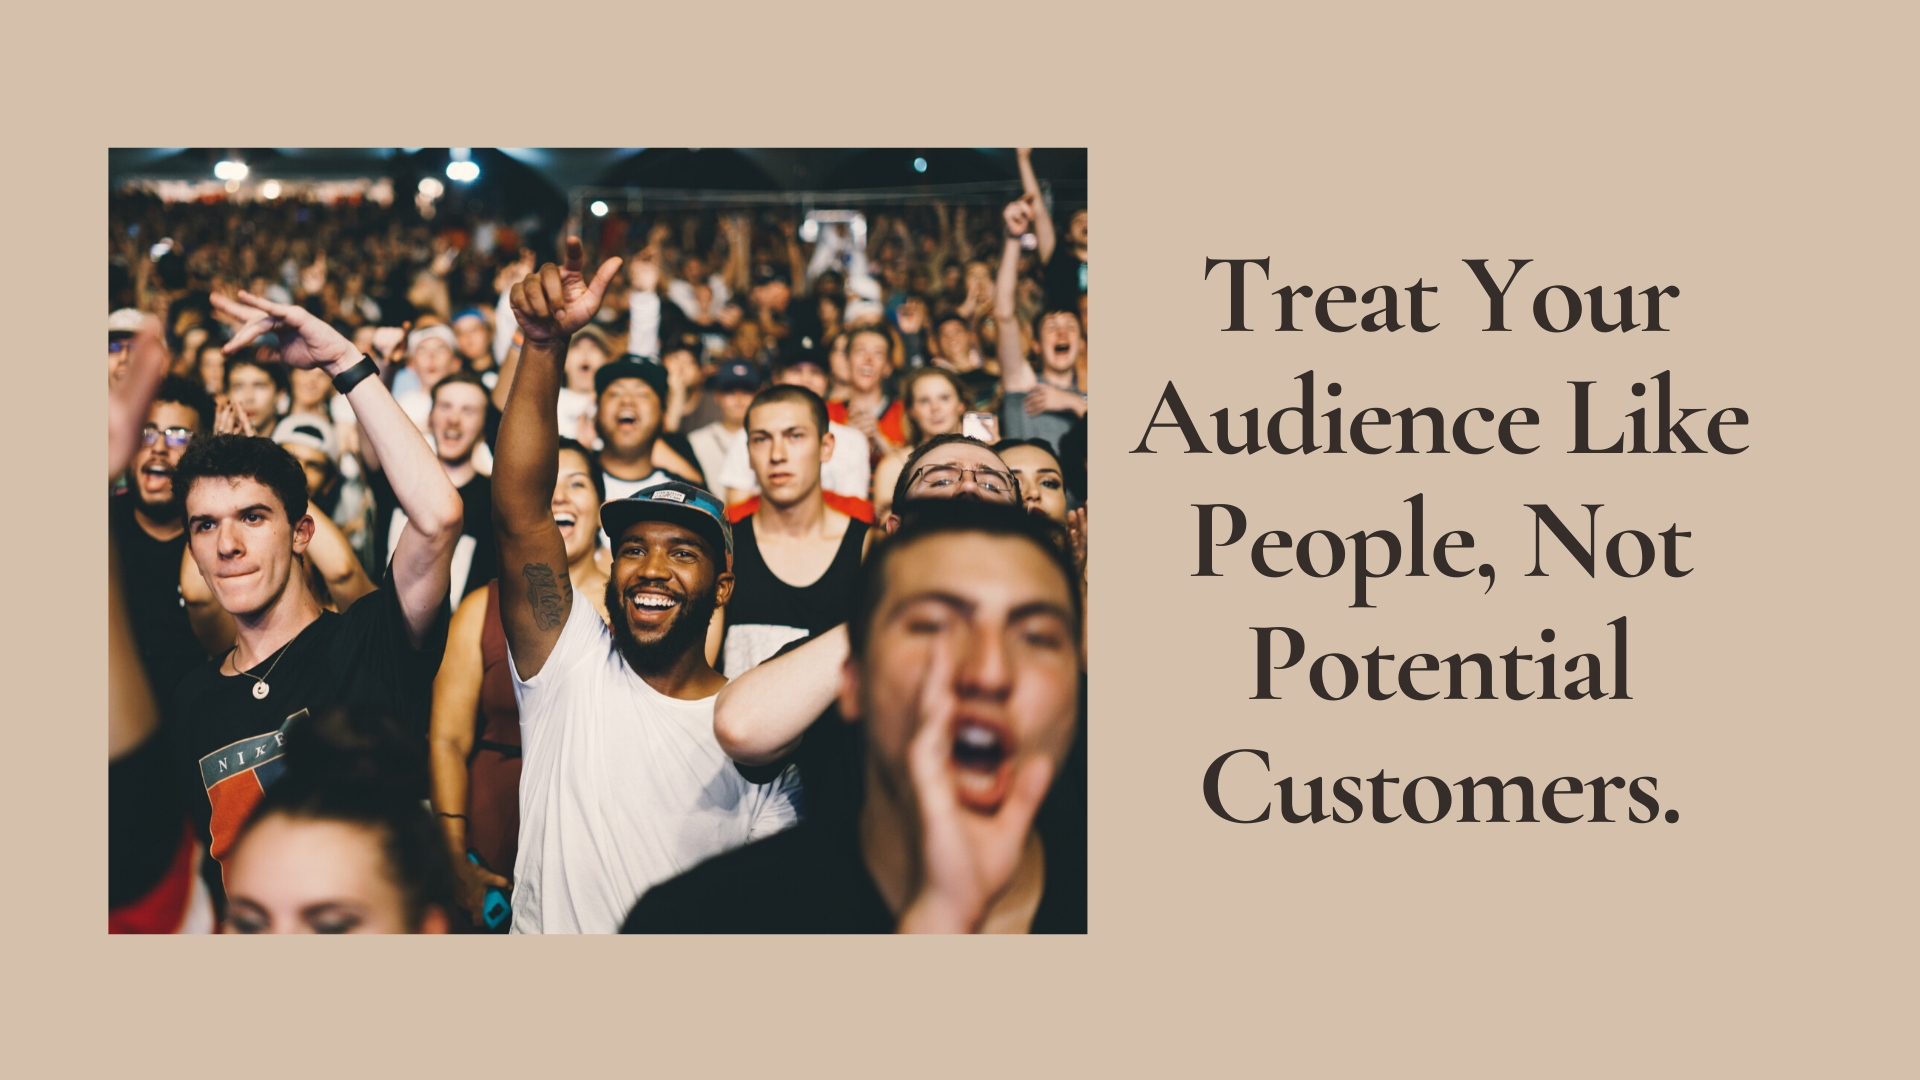 Treat Your Audience Like People, Not Potential Customer